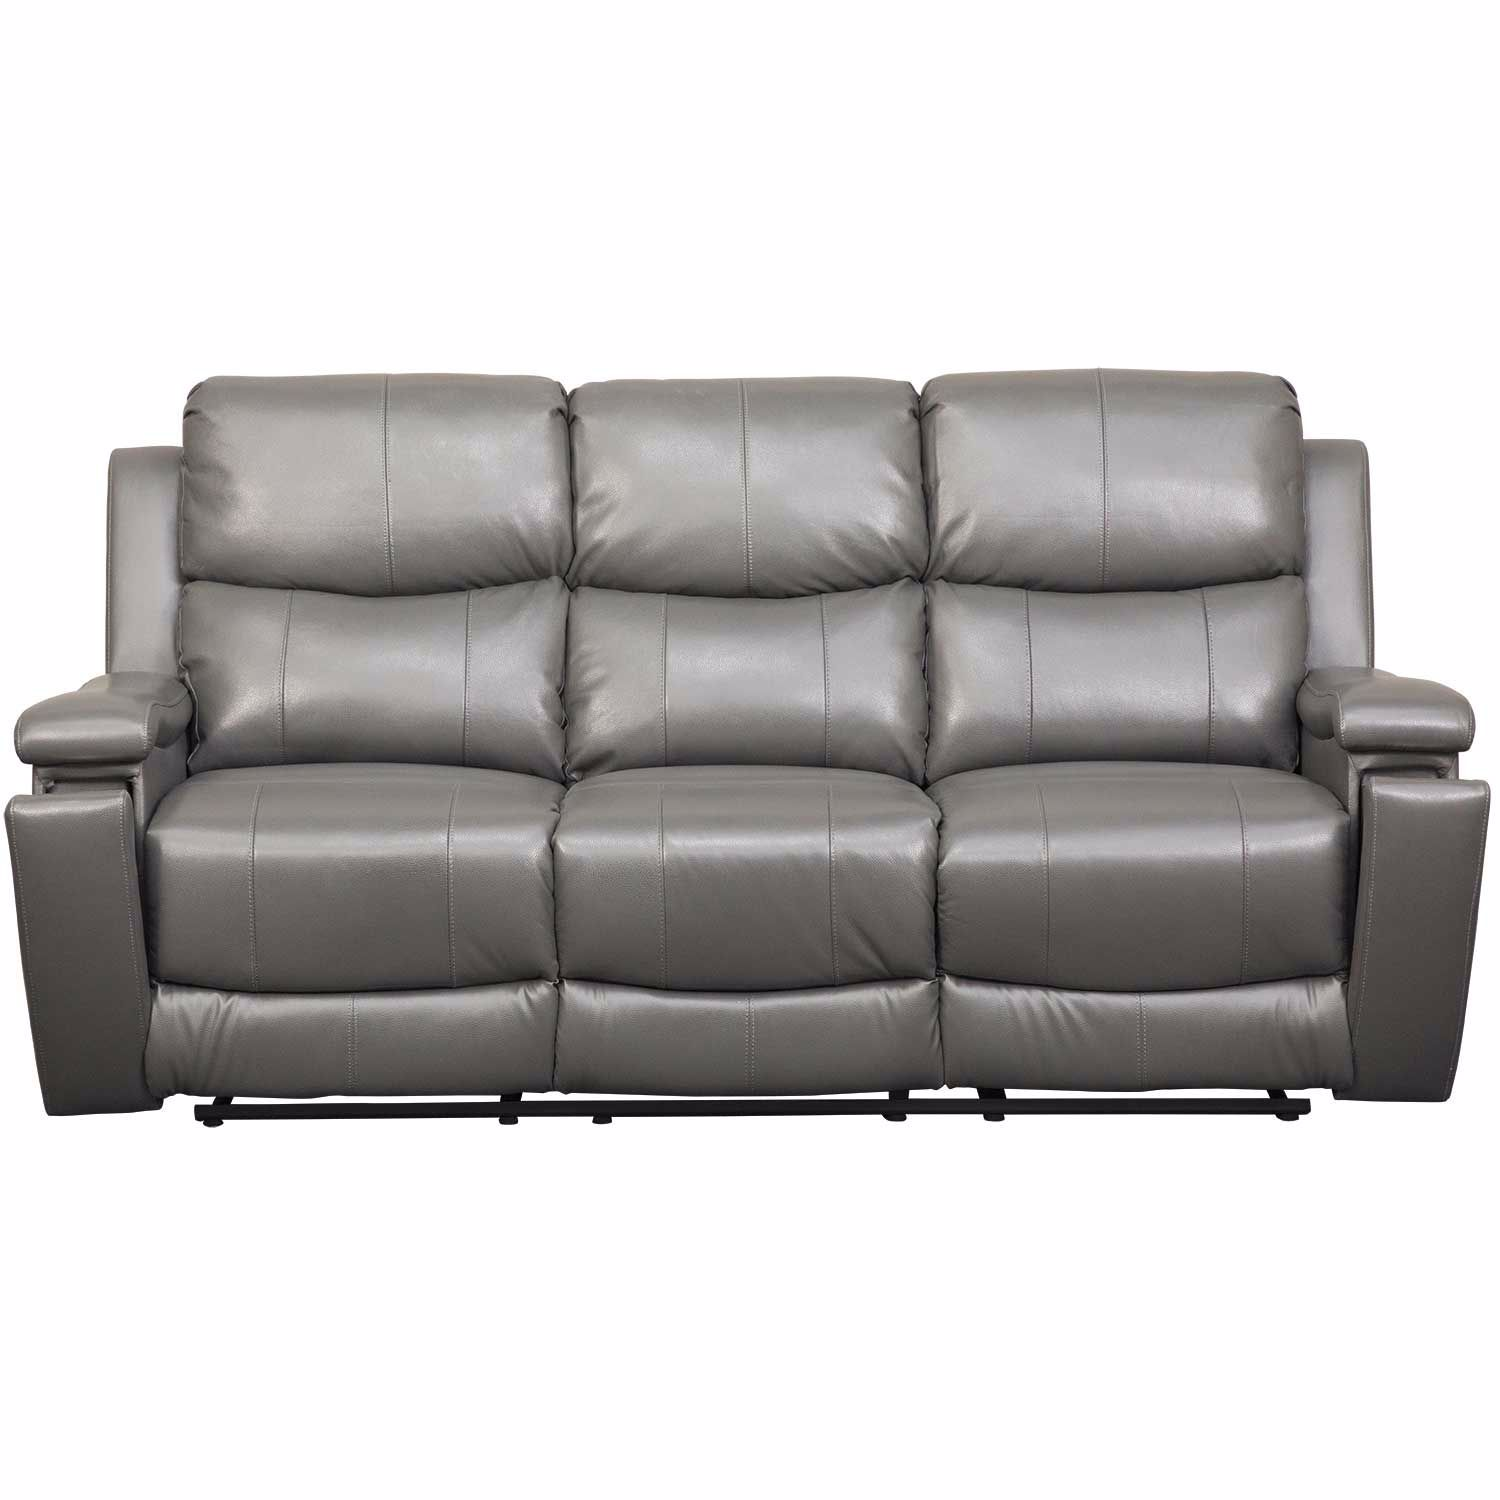 Astonishing Dayton Leather Reclining Sofa Gmtry Best Dining Table And Chair Ideas Images Gmtryco